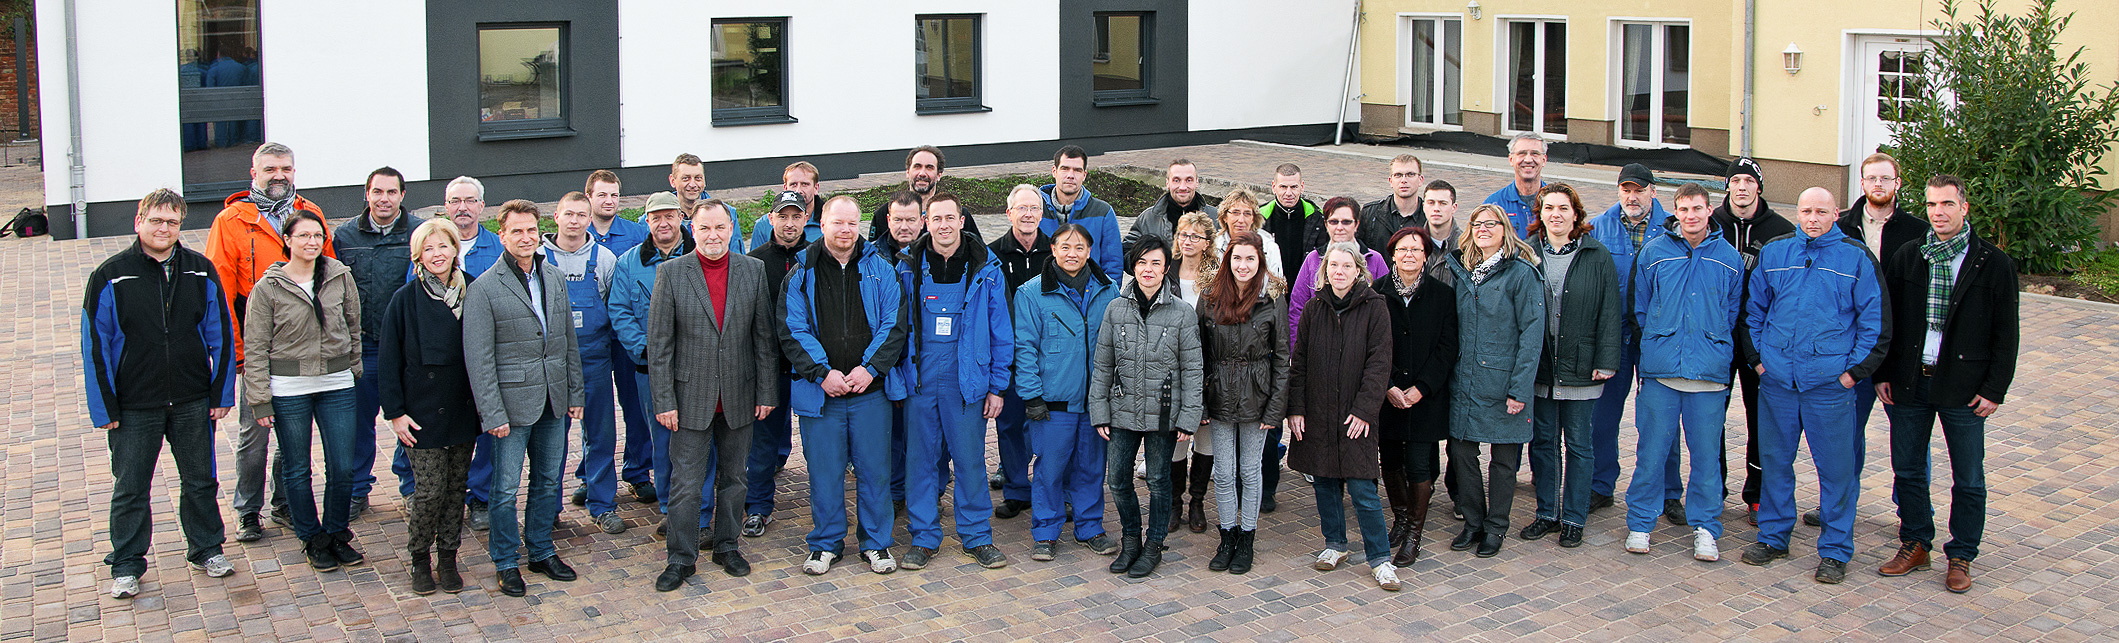 Our Staff, group photo